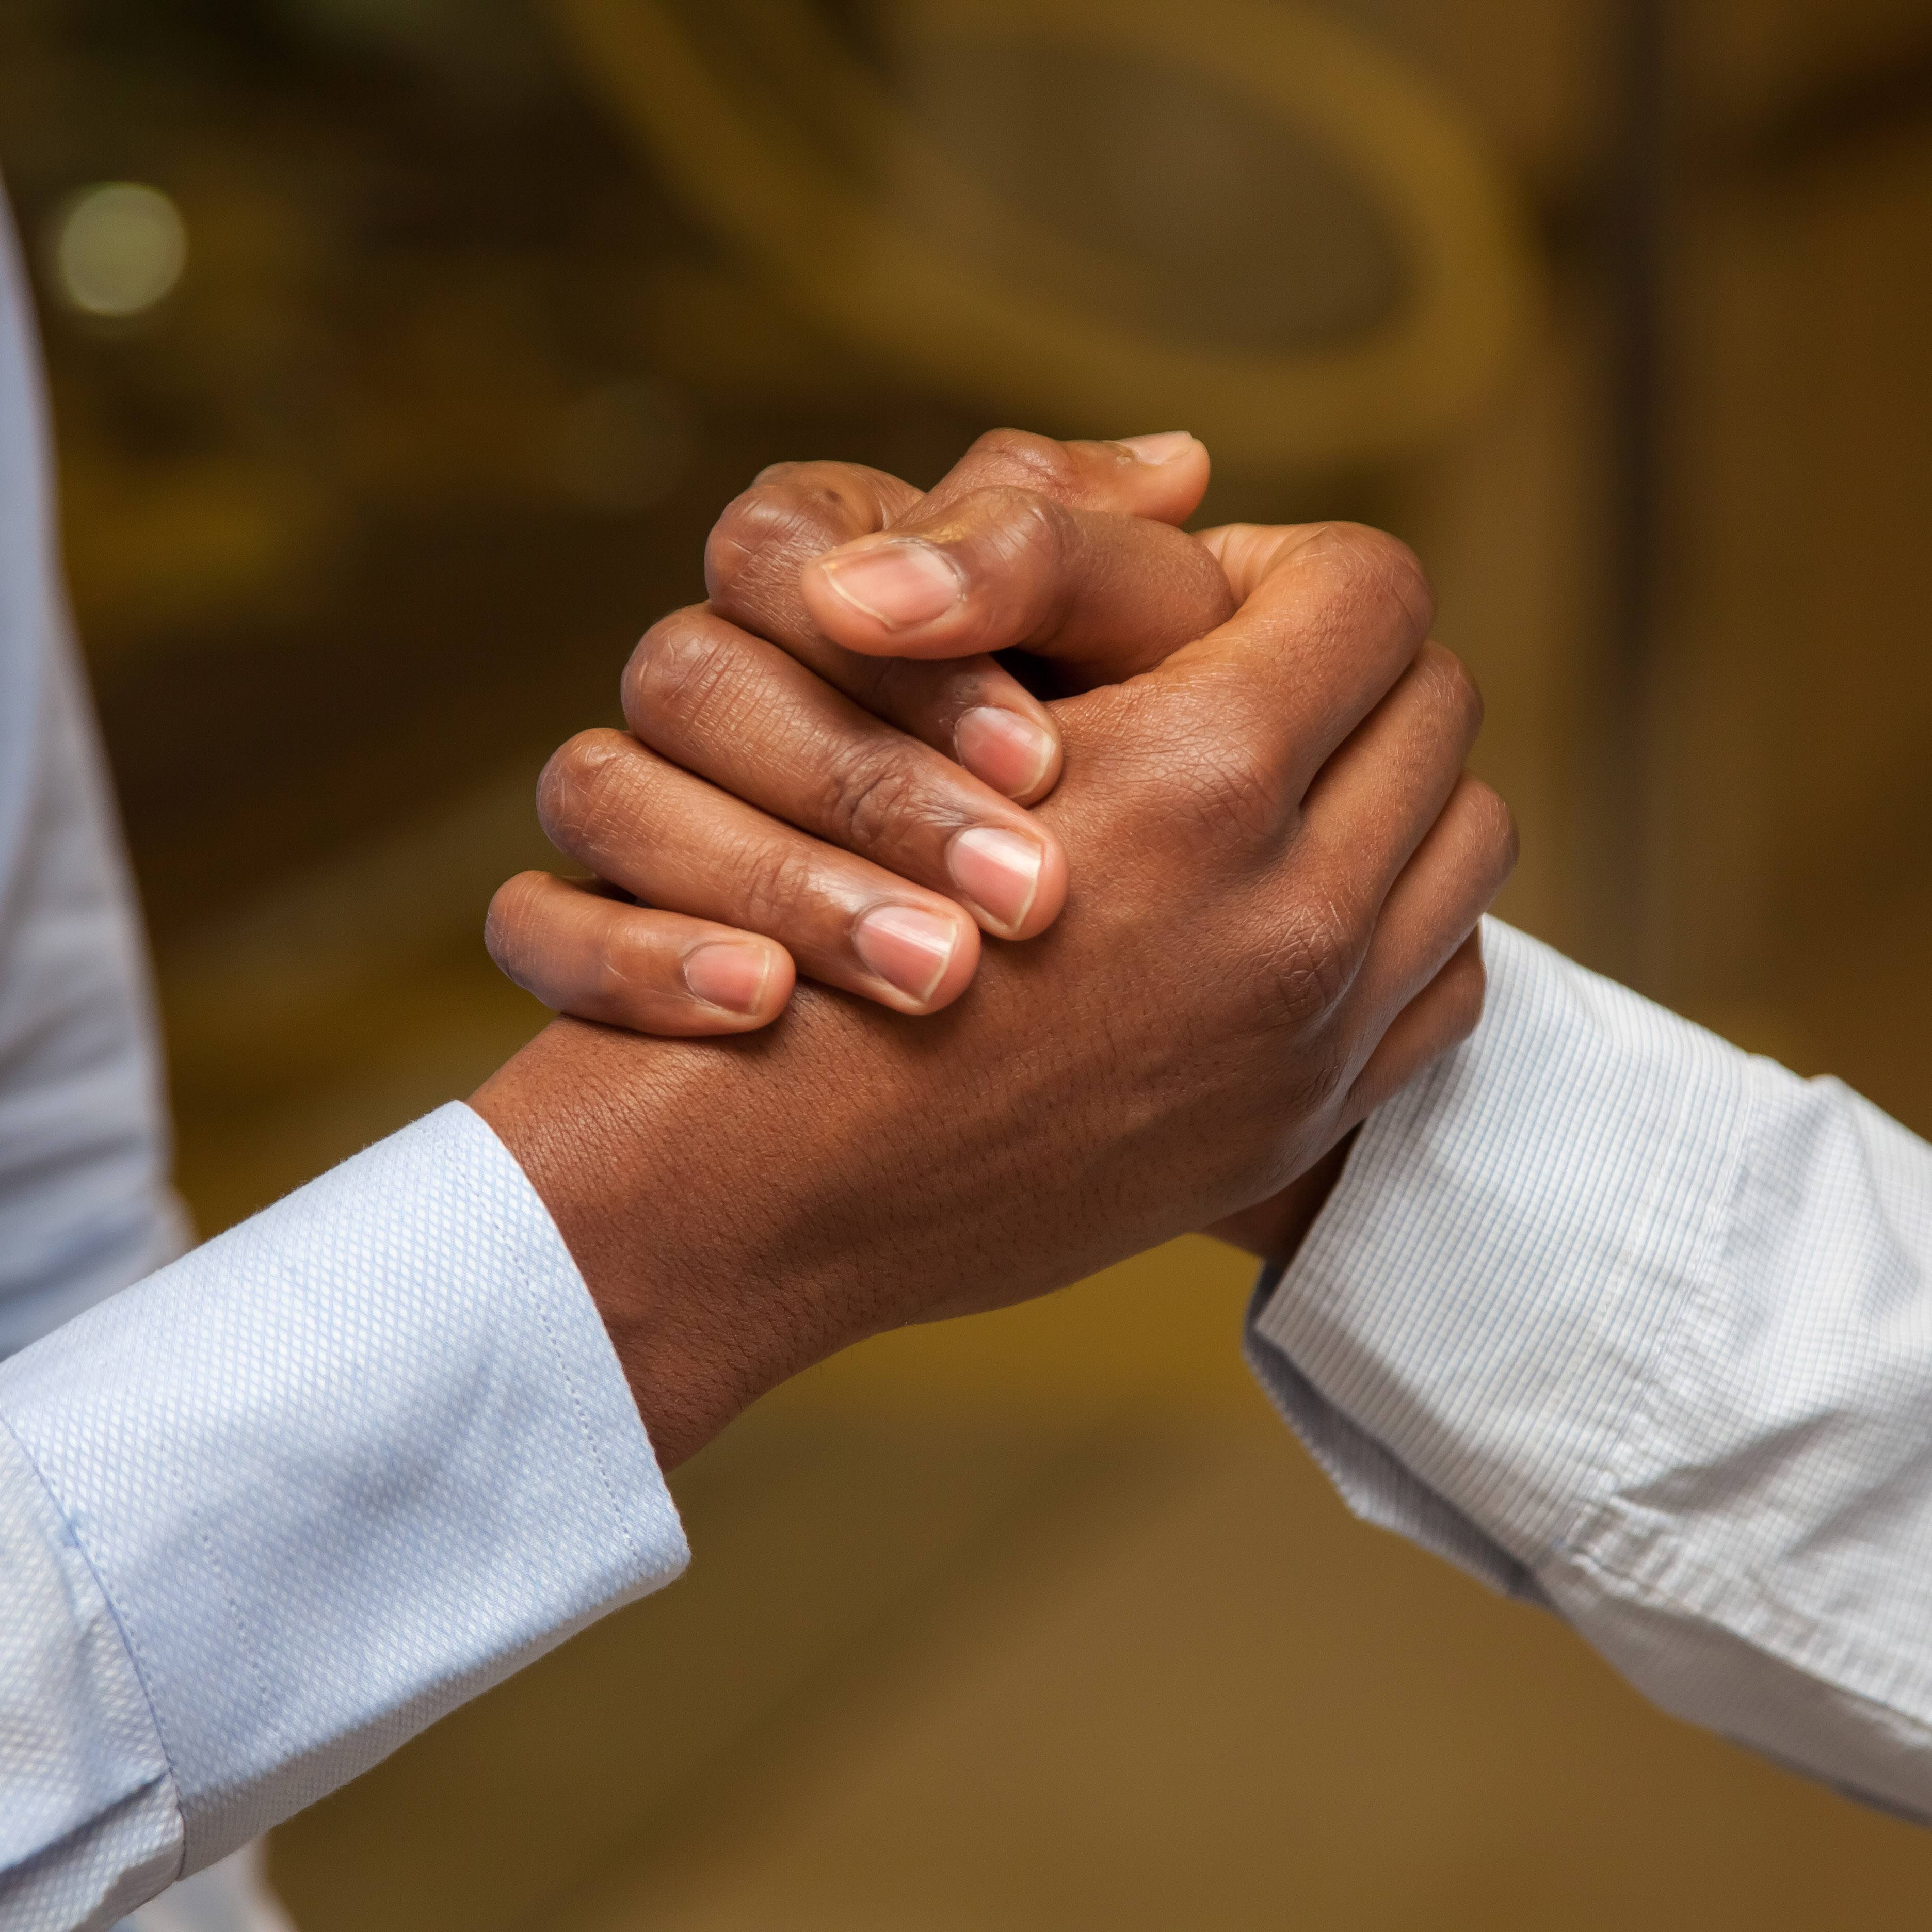 a close-up of two men's hands clasped